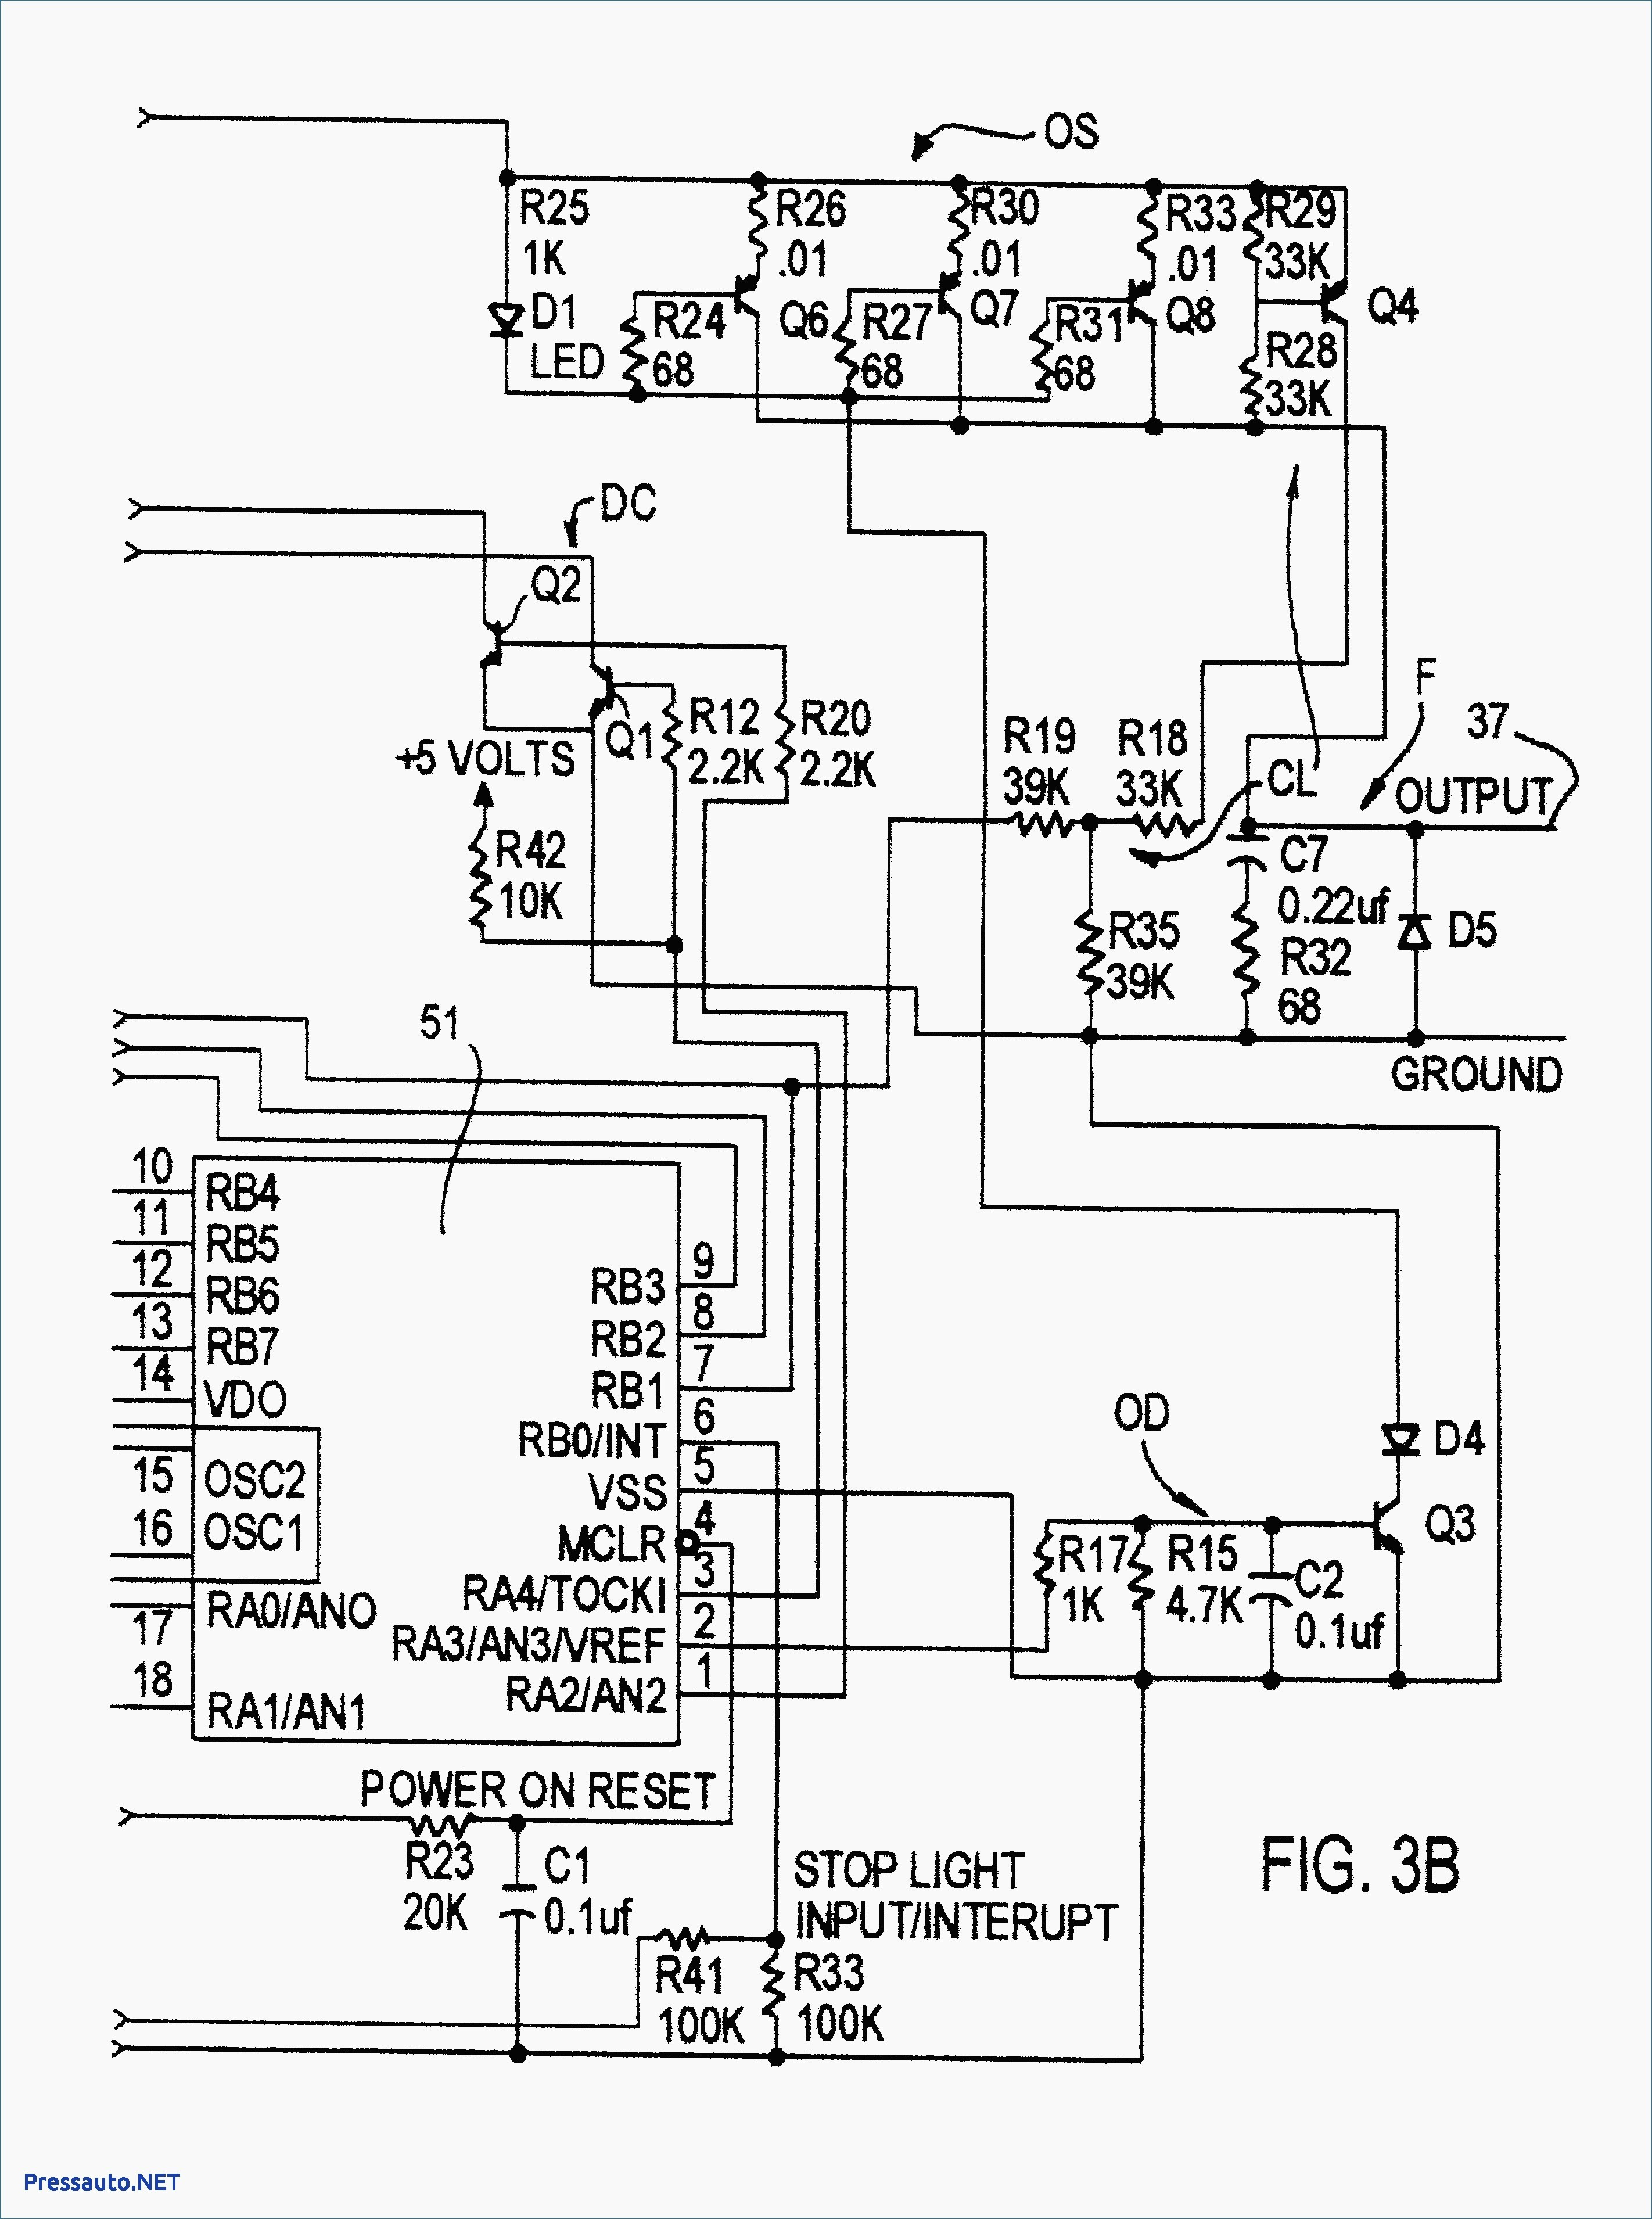 Wiring Diagram For Stirling Trailers - Product Wiring Diagrams •